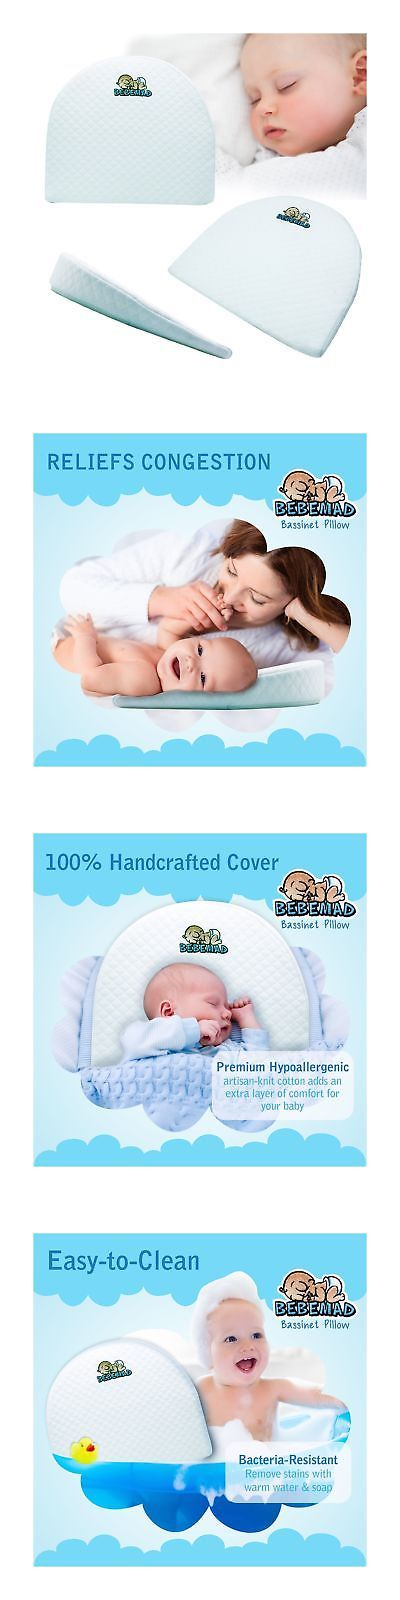 Bed Pillows 180907: Universal Bassinet Wedge And Baby Sleep Positioner With Handcrafted Cotton Re... -> BUY IT NOW ONLY: $31.94 on eBay!